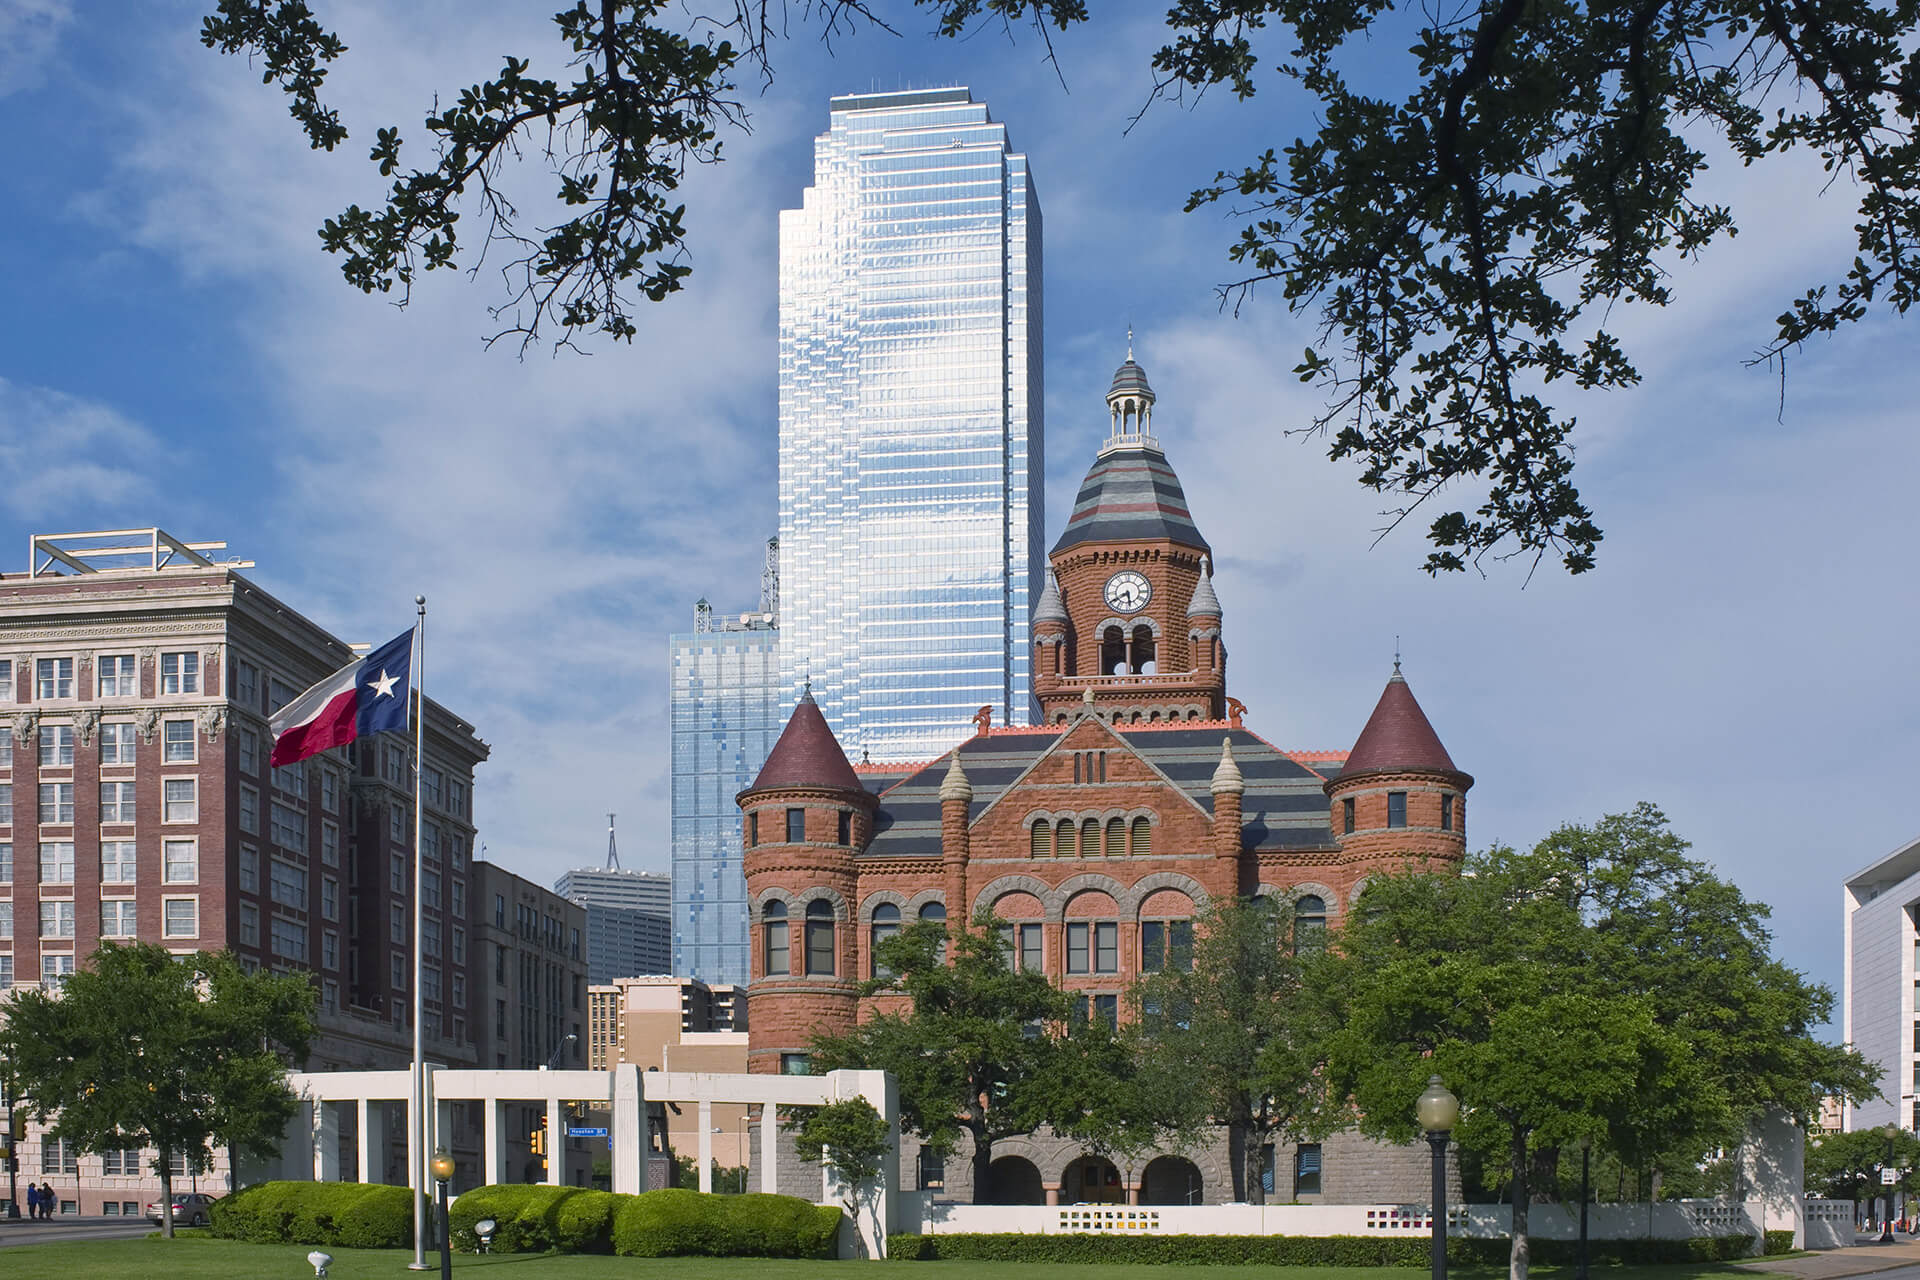 Dallas County Courthouse and Dealey Plaza